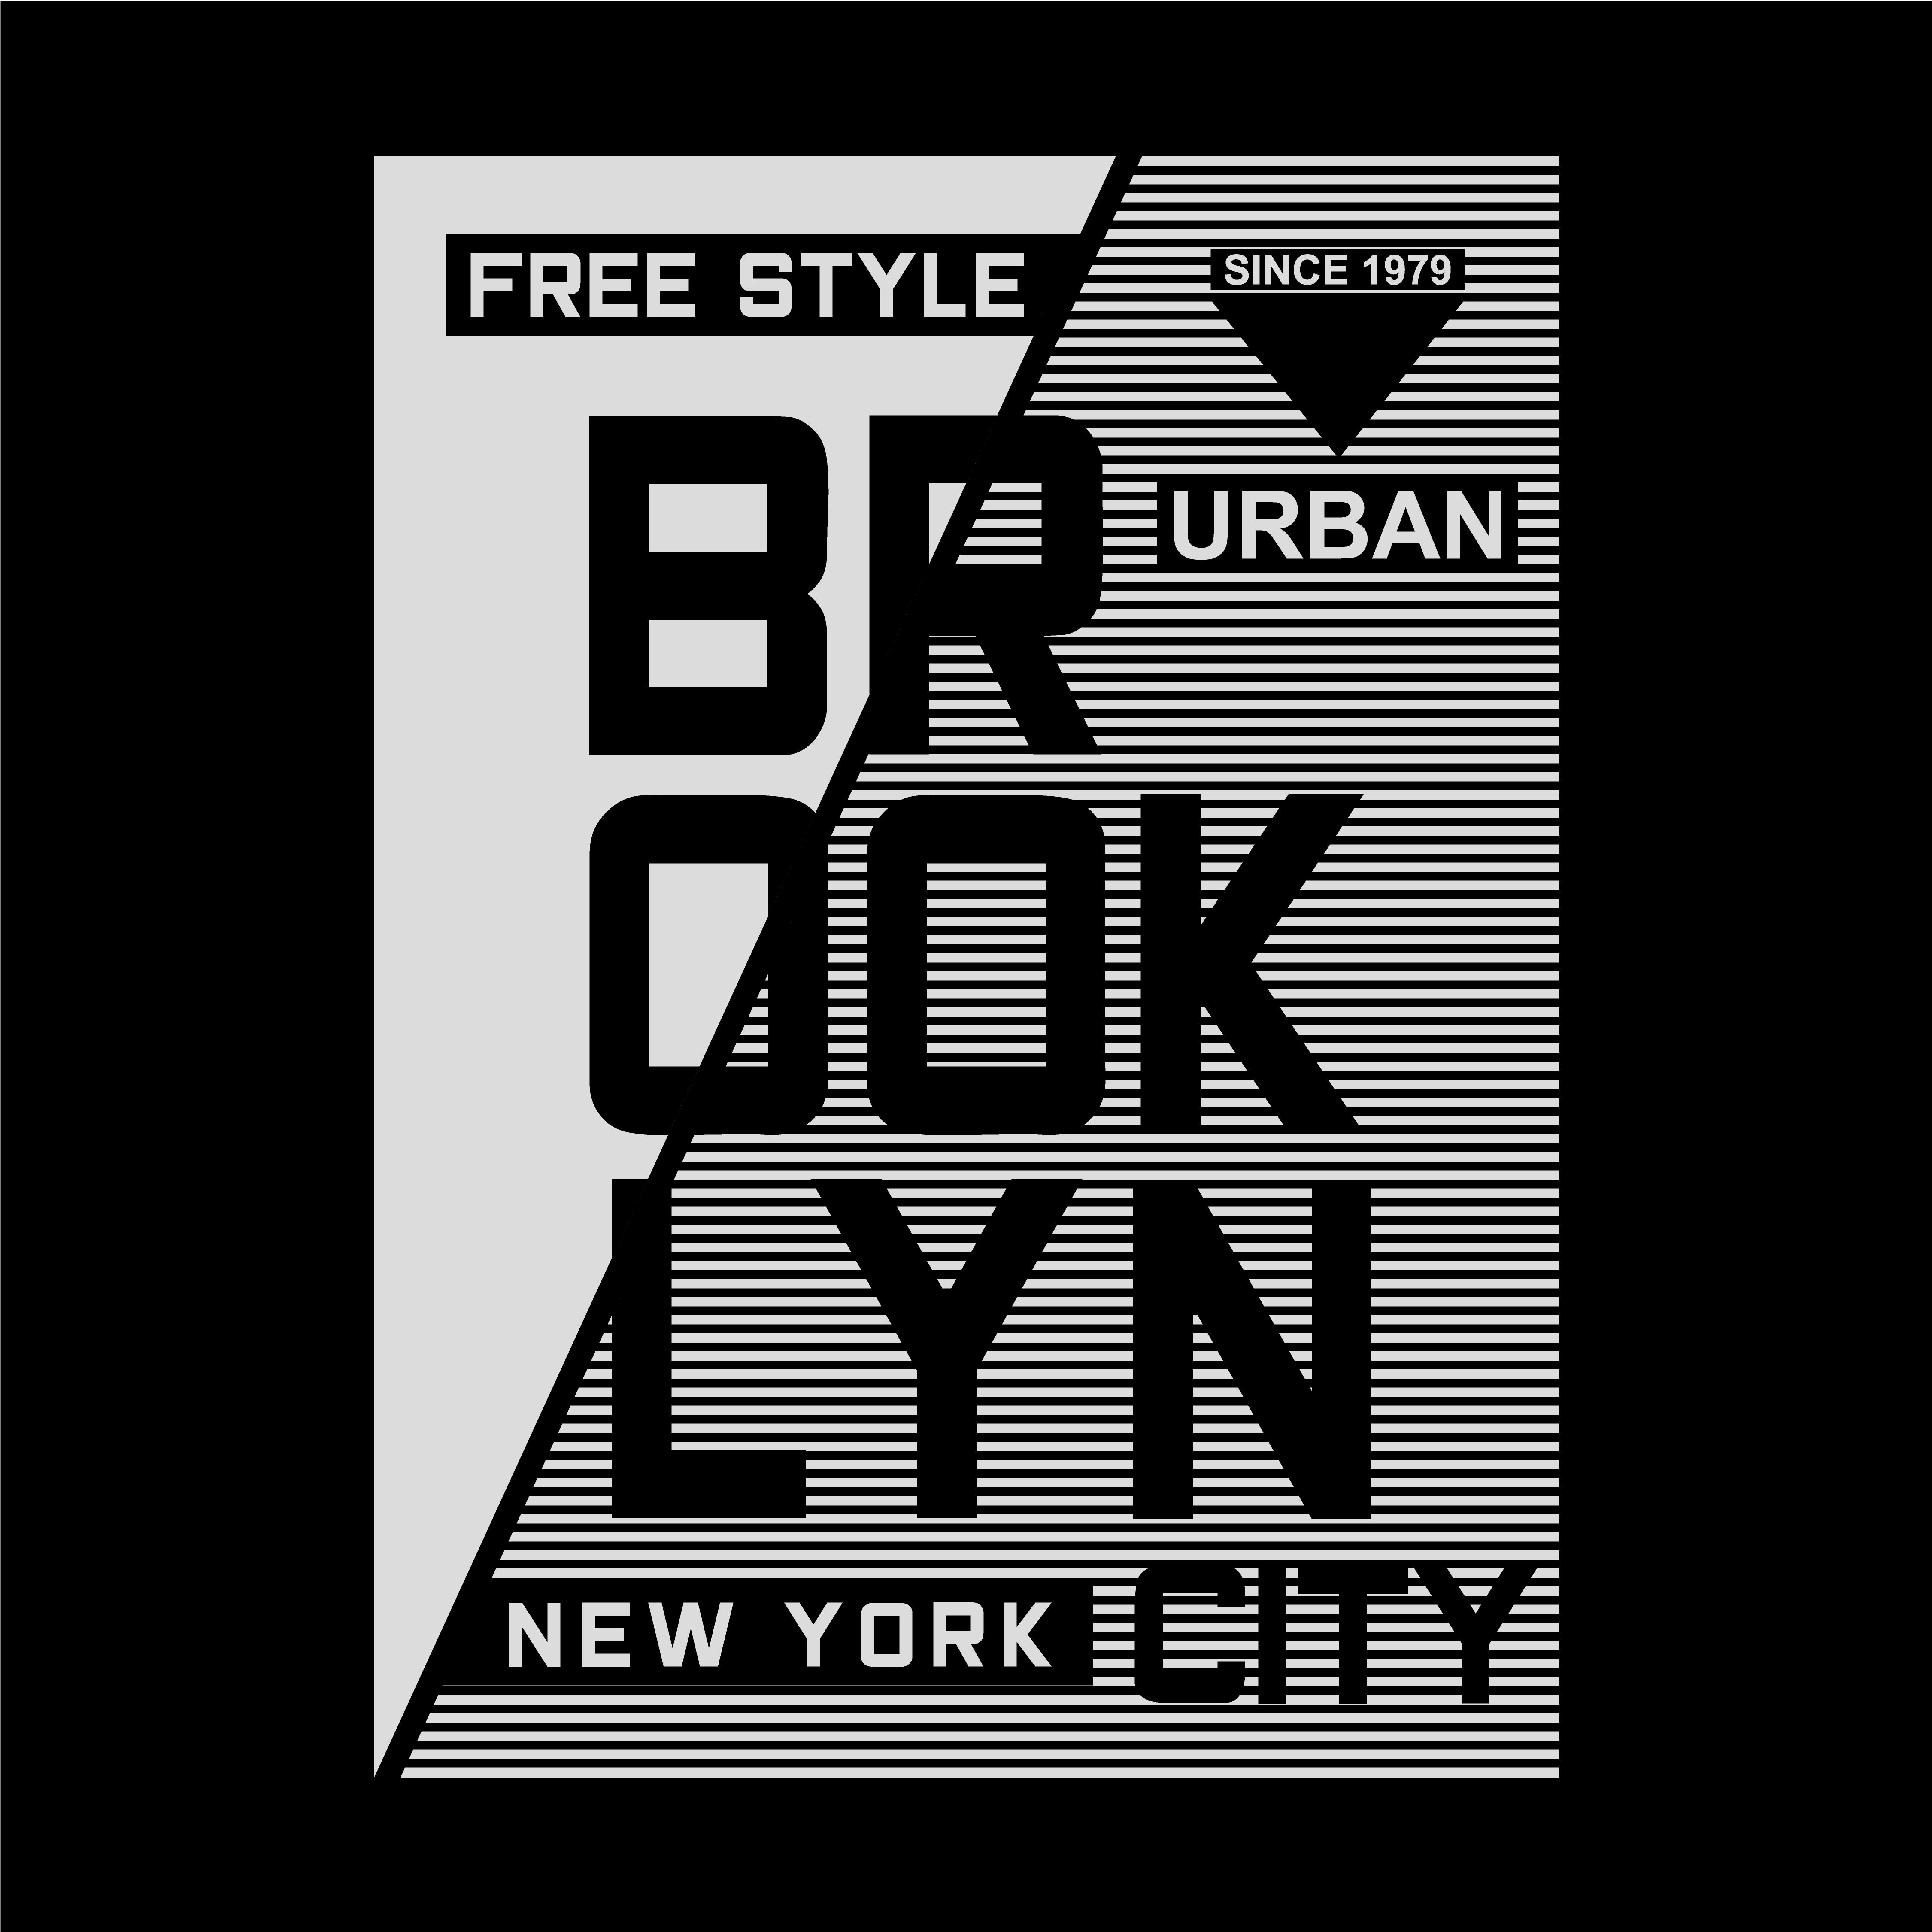 e77704fb Free Style Brooklyn typography design tee for t shirt - Download Free  Vector Art, Stock Graphics & Images